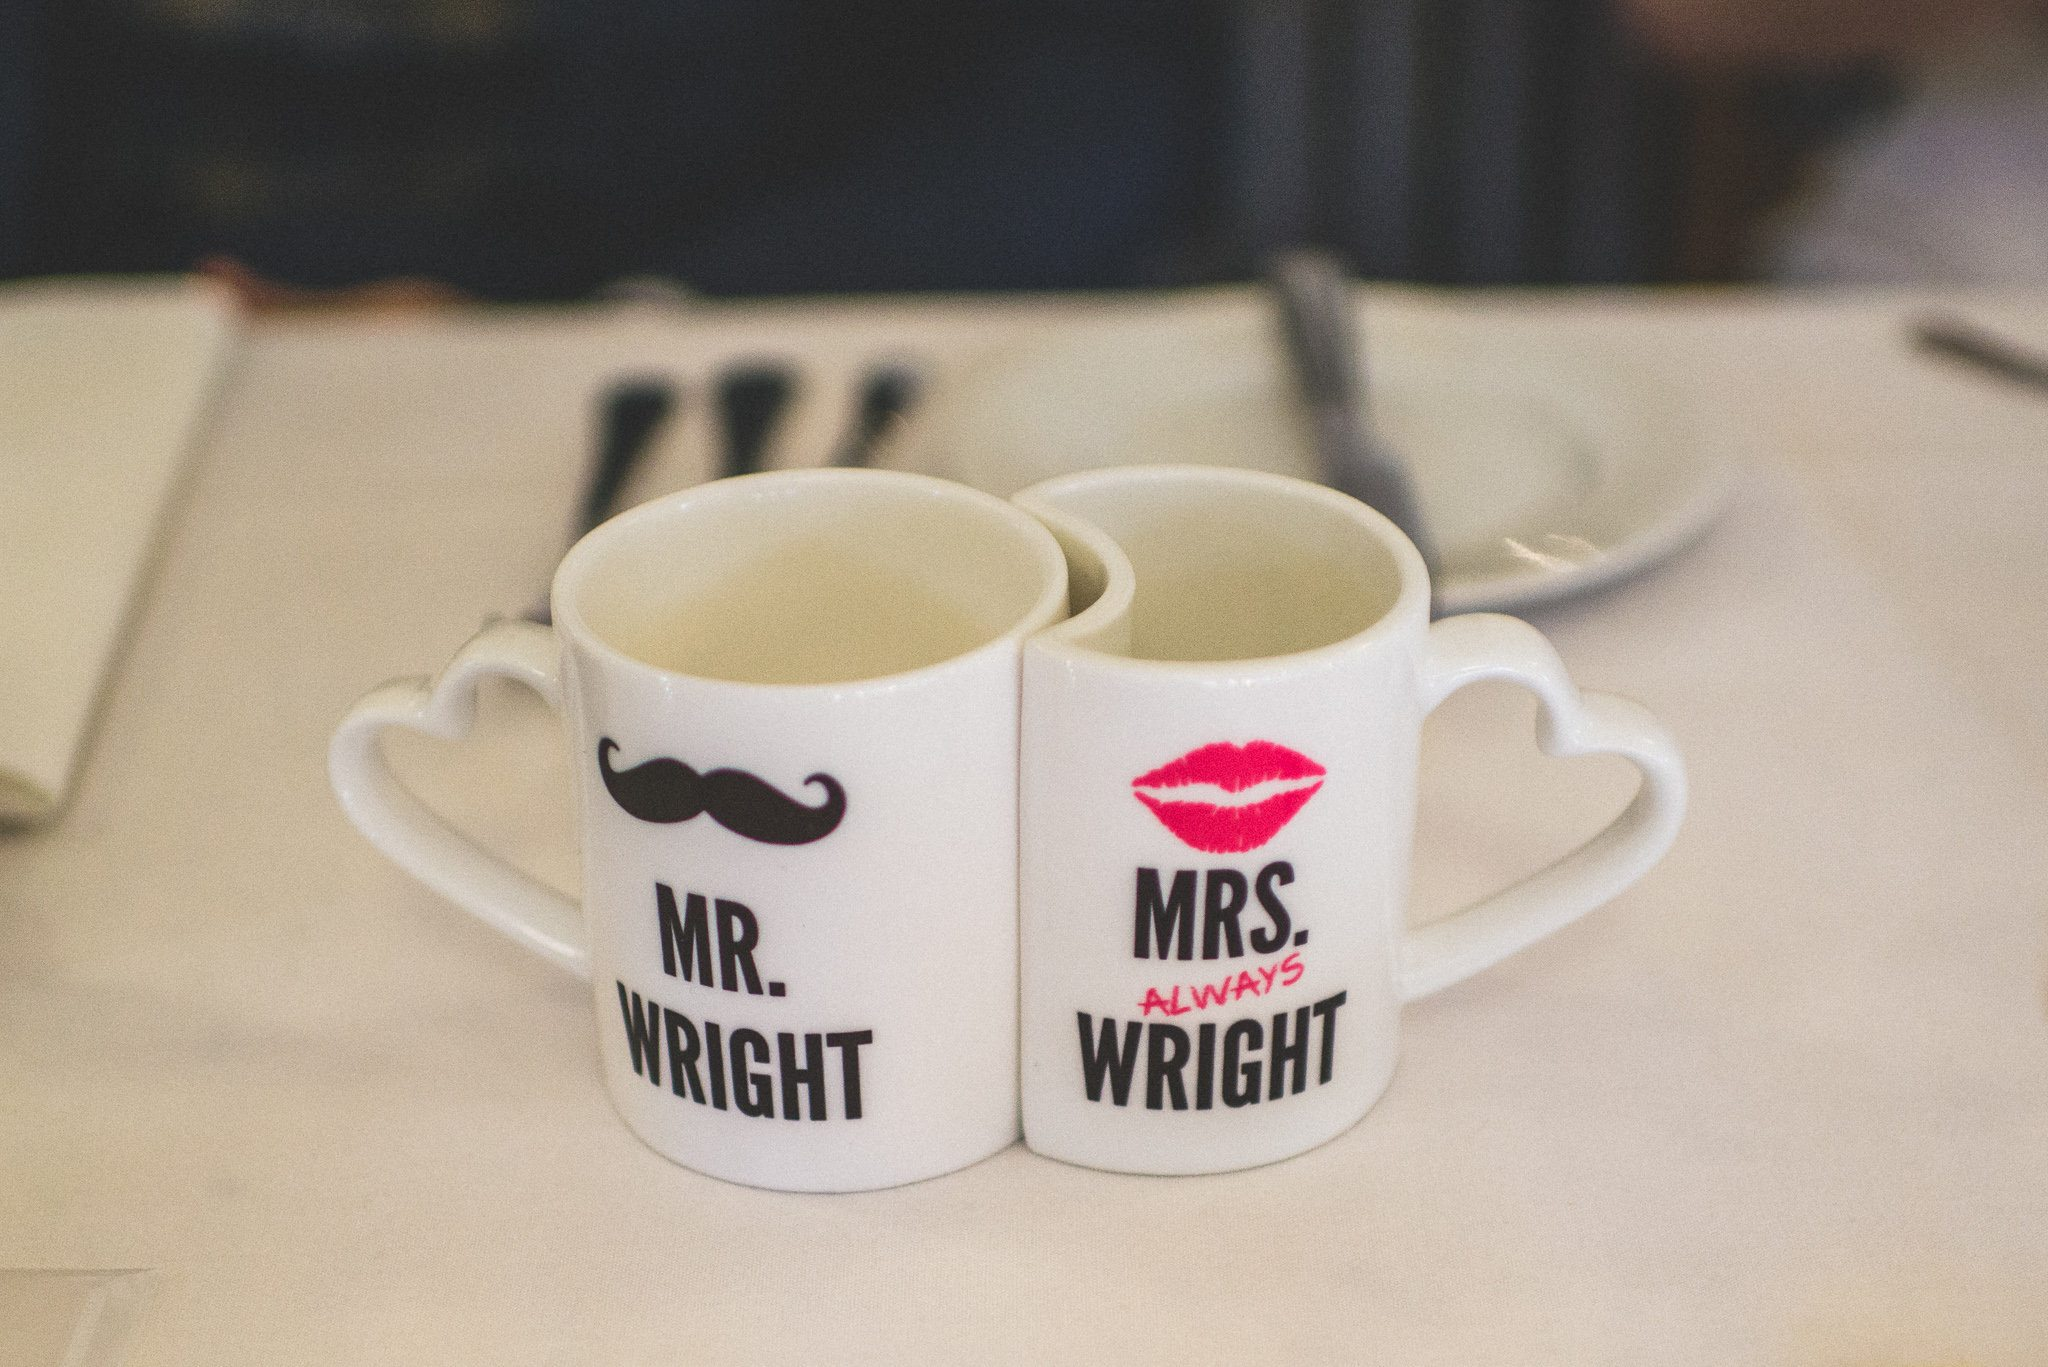 Two interlocking mugs with the couple's married name on them, one saying 'Mr Wright' and one saying 'Mrs Always Wright'